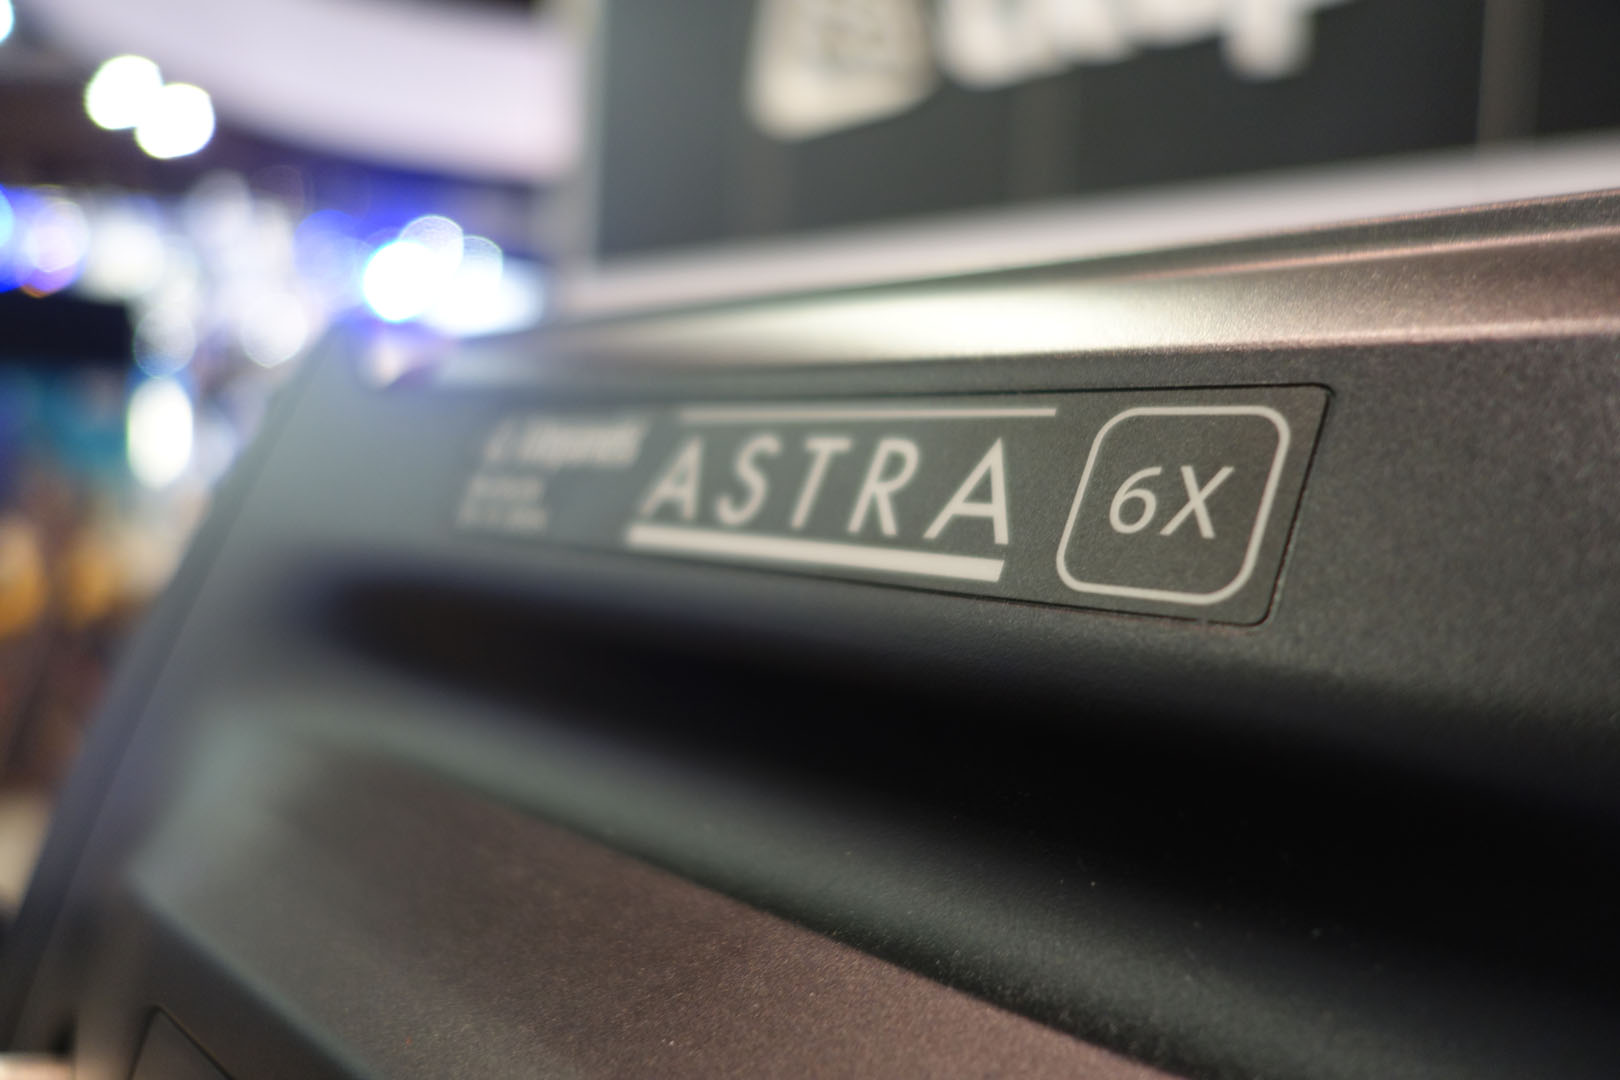 new concept f9624 04dcb Litepanels Astra 6X and 3X - More output, less power draw ...